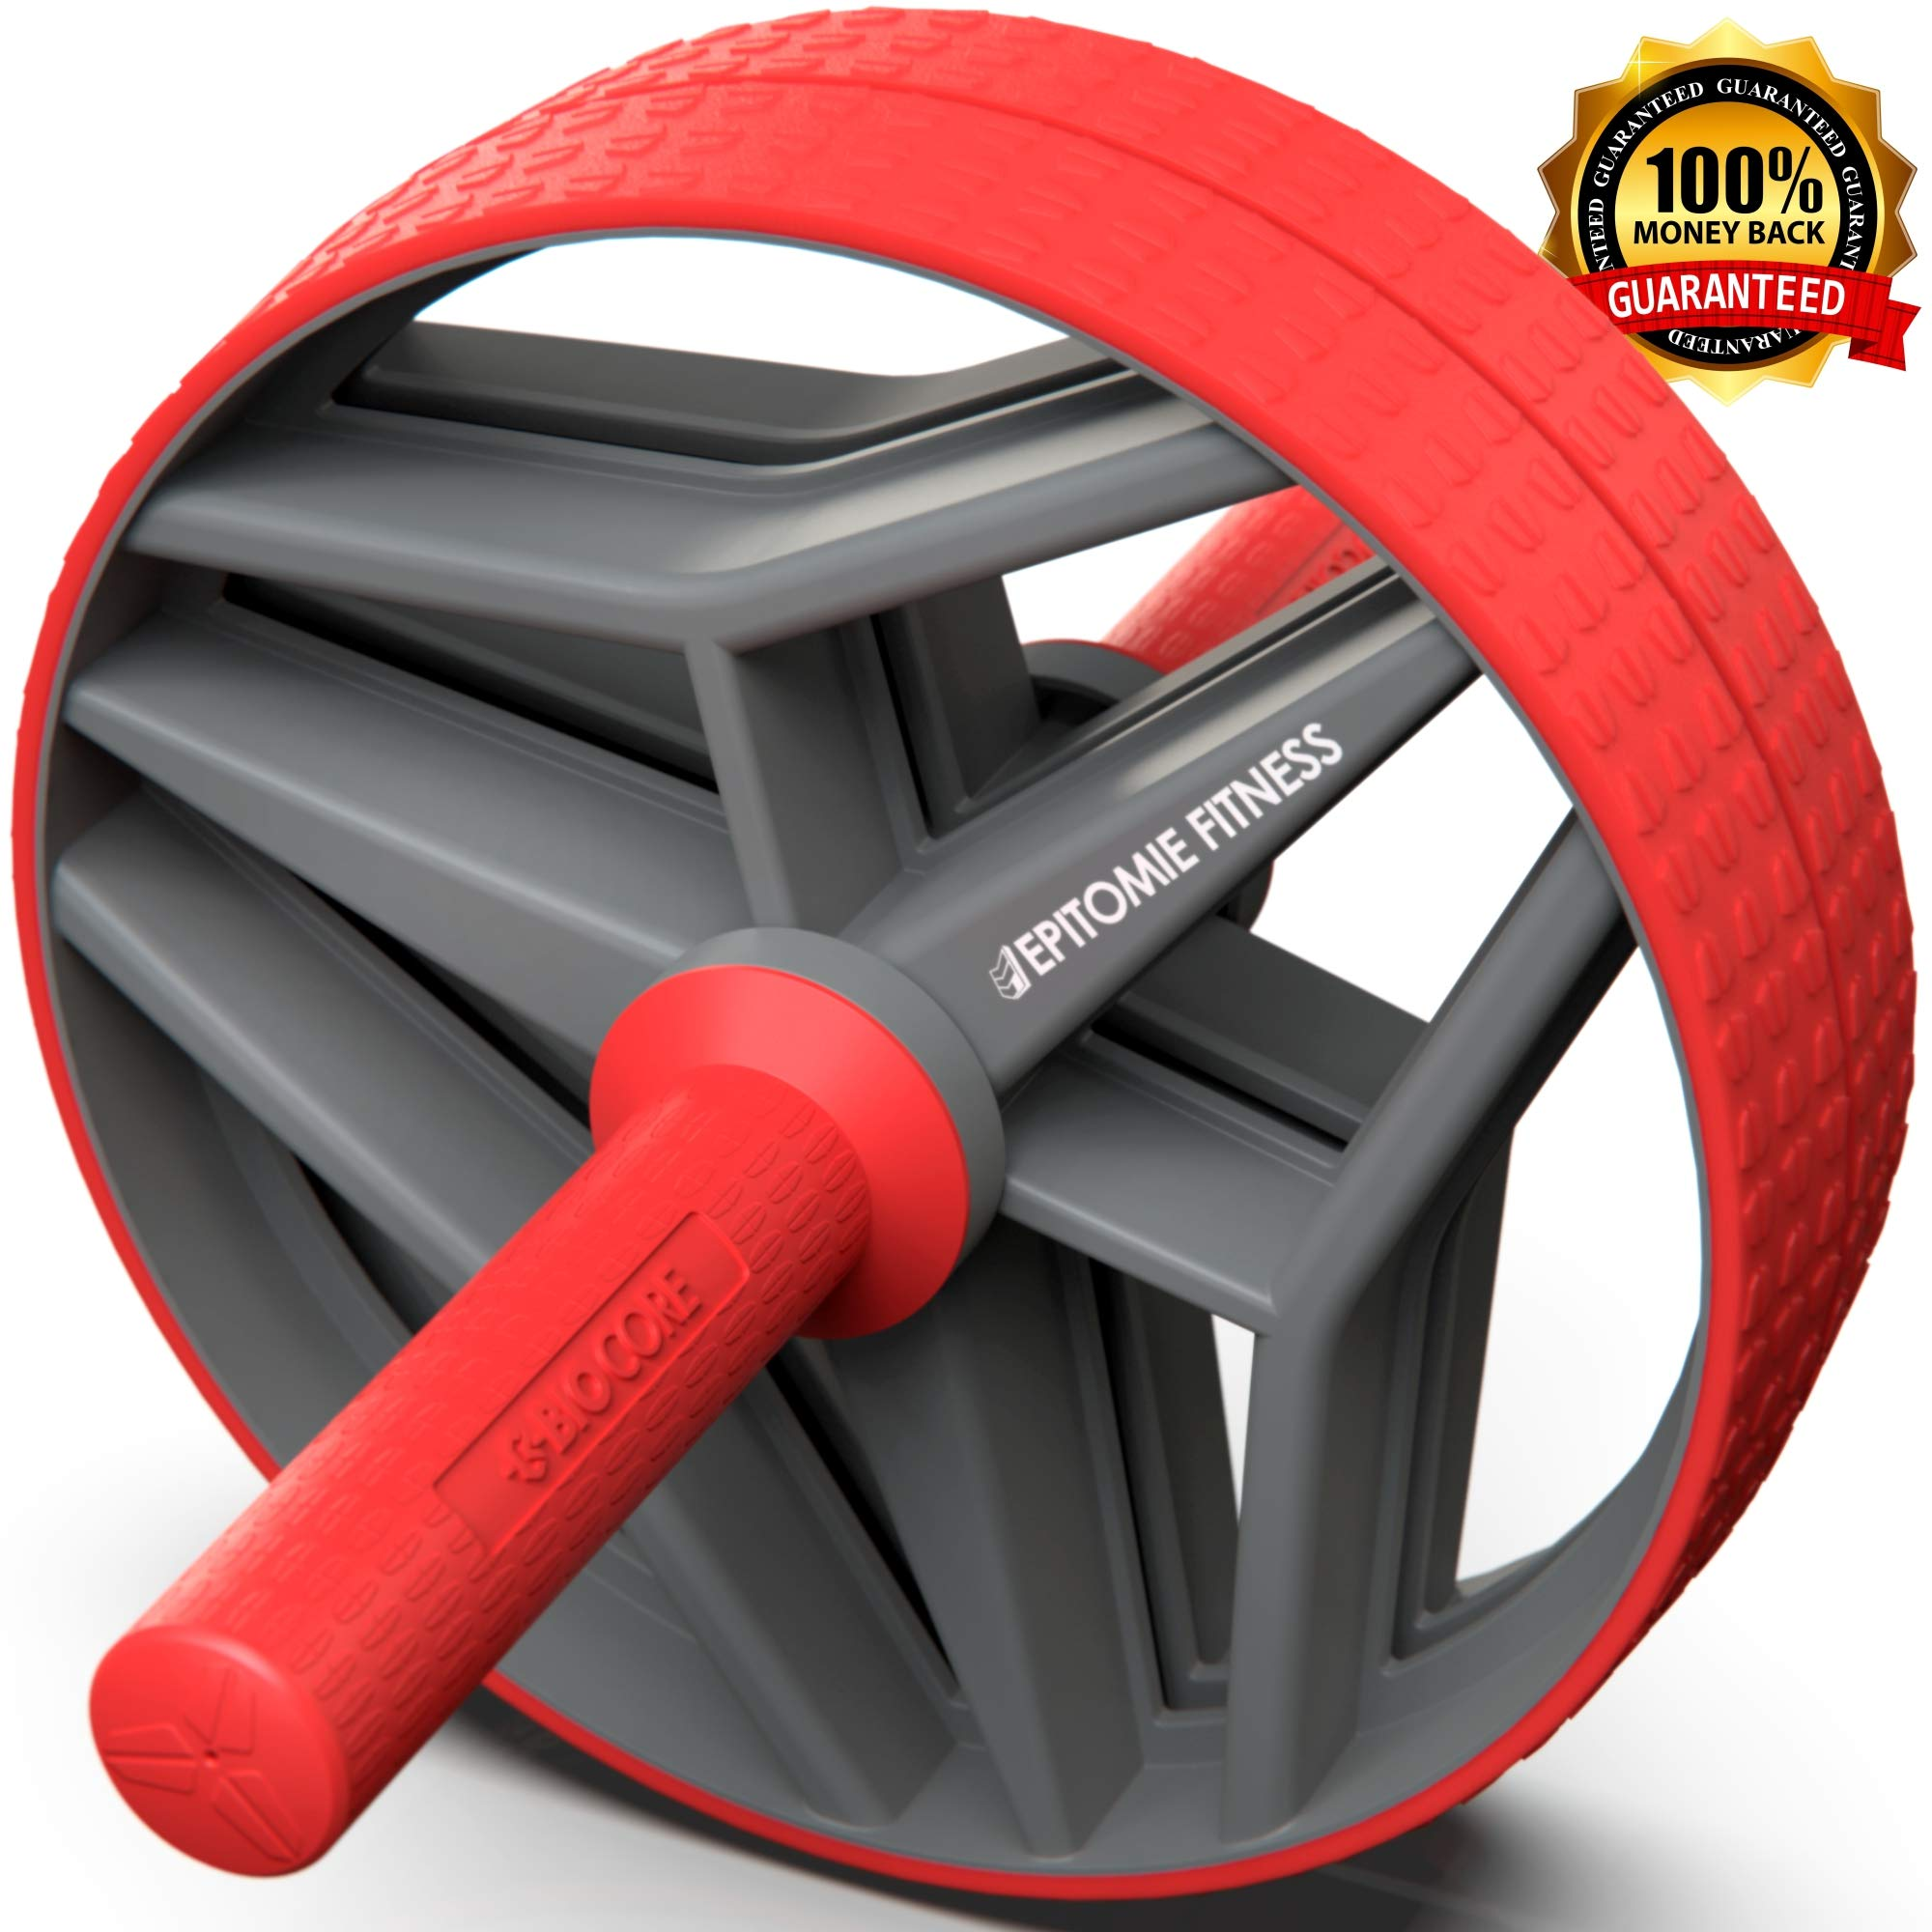 Epitomie Fitness BIO Core Ab Roller Wheel with 2 Configurable Wheels and Non-Slip Handles - Ab Wheel Trainer with Kneeling Mat for Strong Core (Red/Grey)